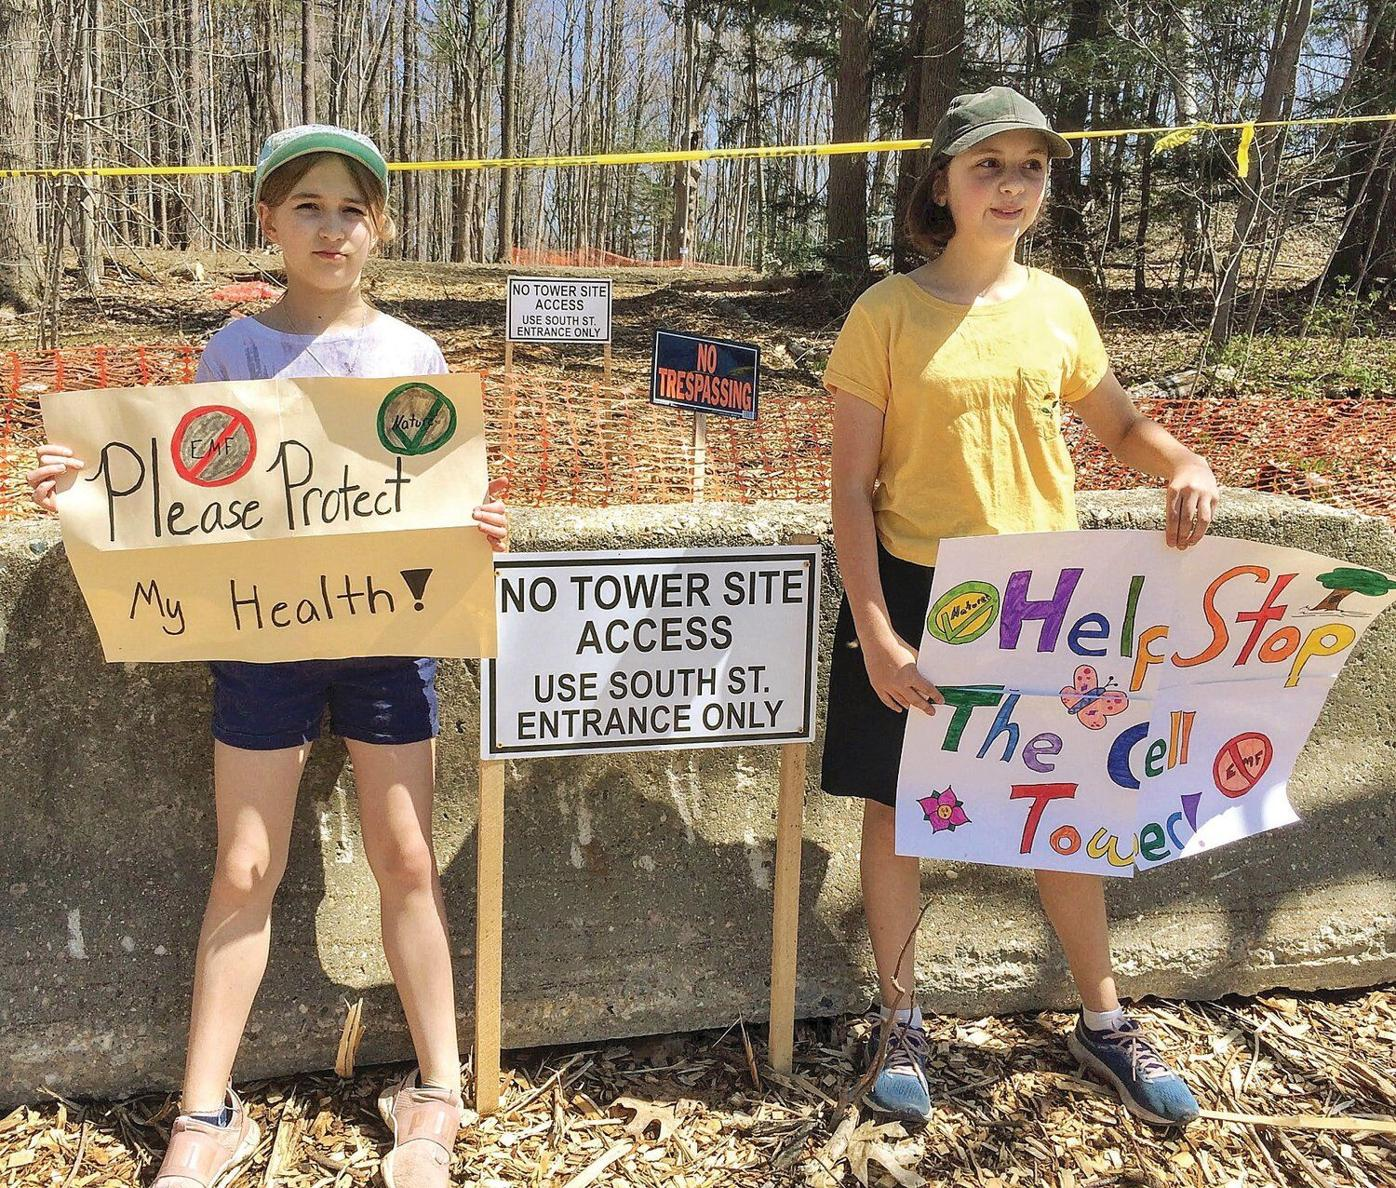 Unhappy neighbors await ruling on Pittsfield cell tower